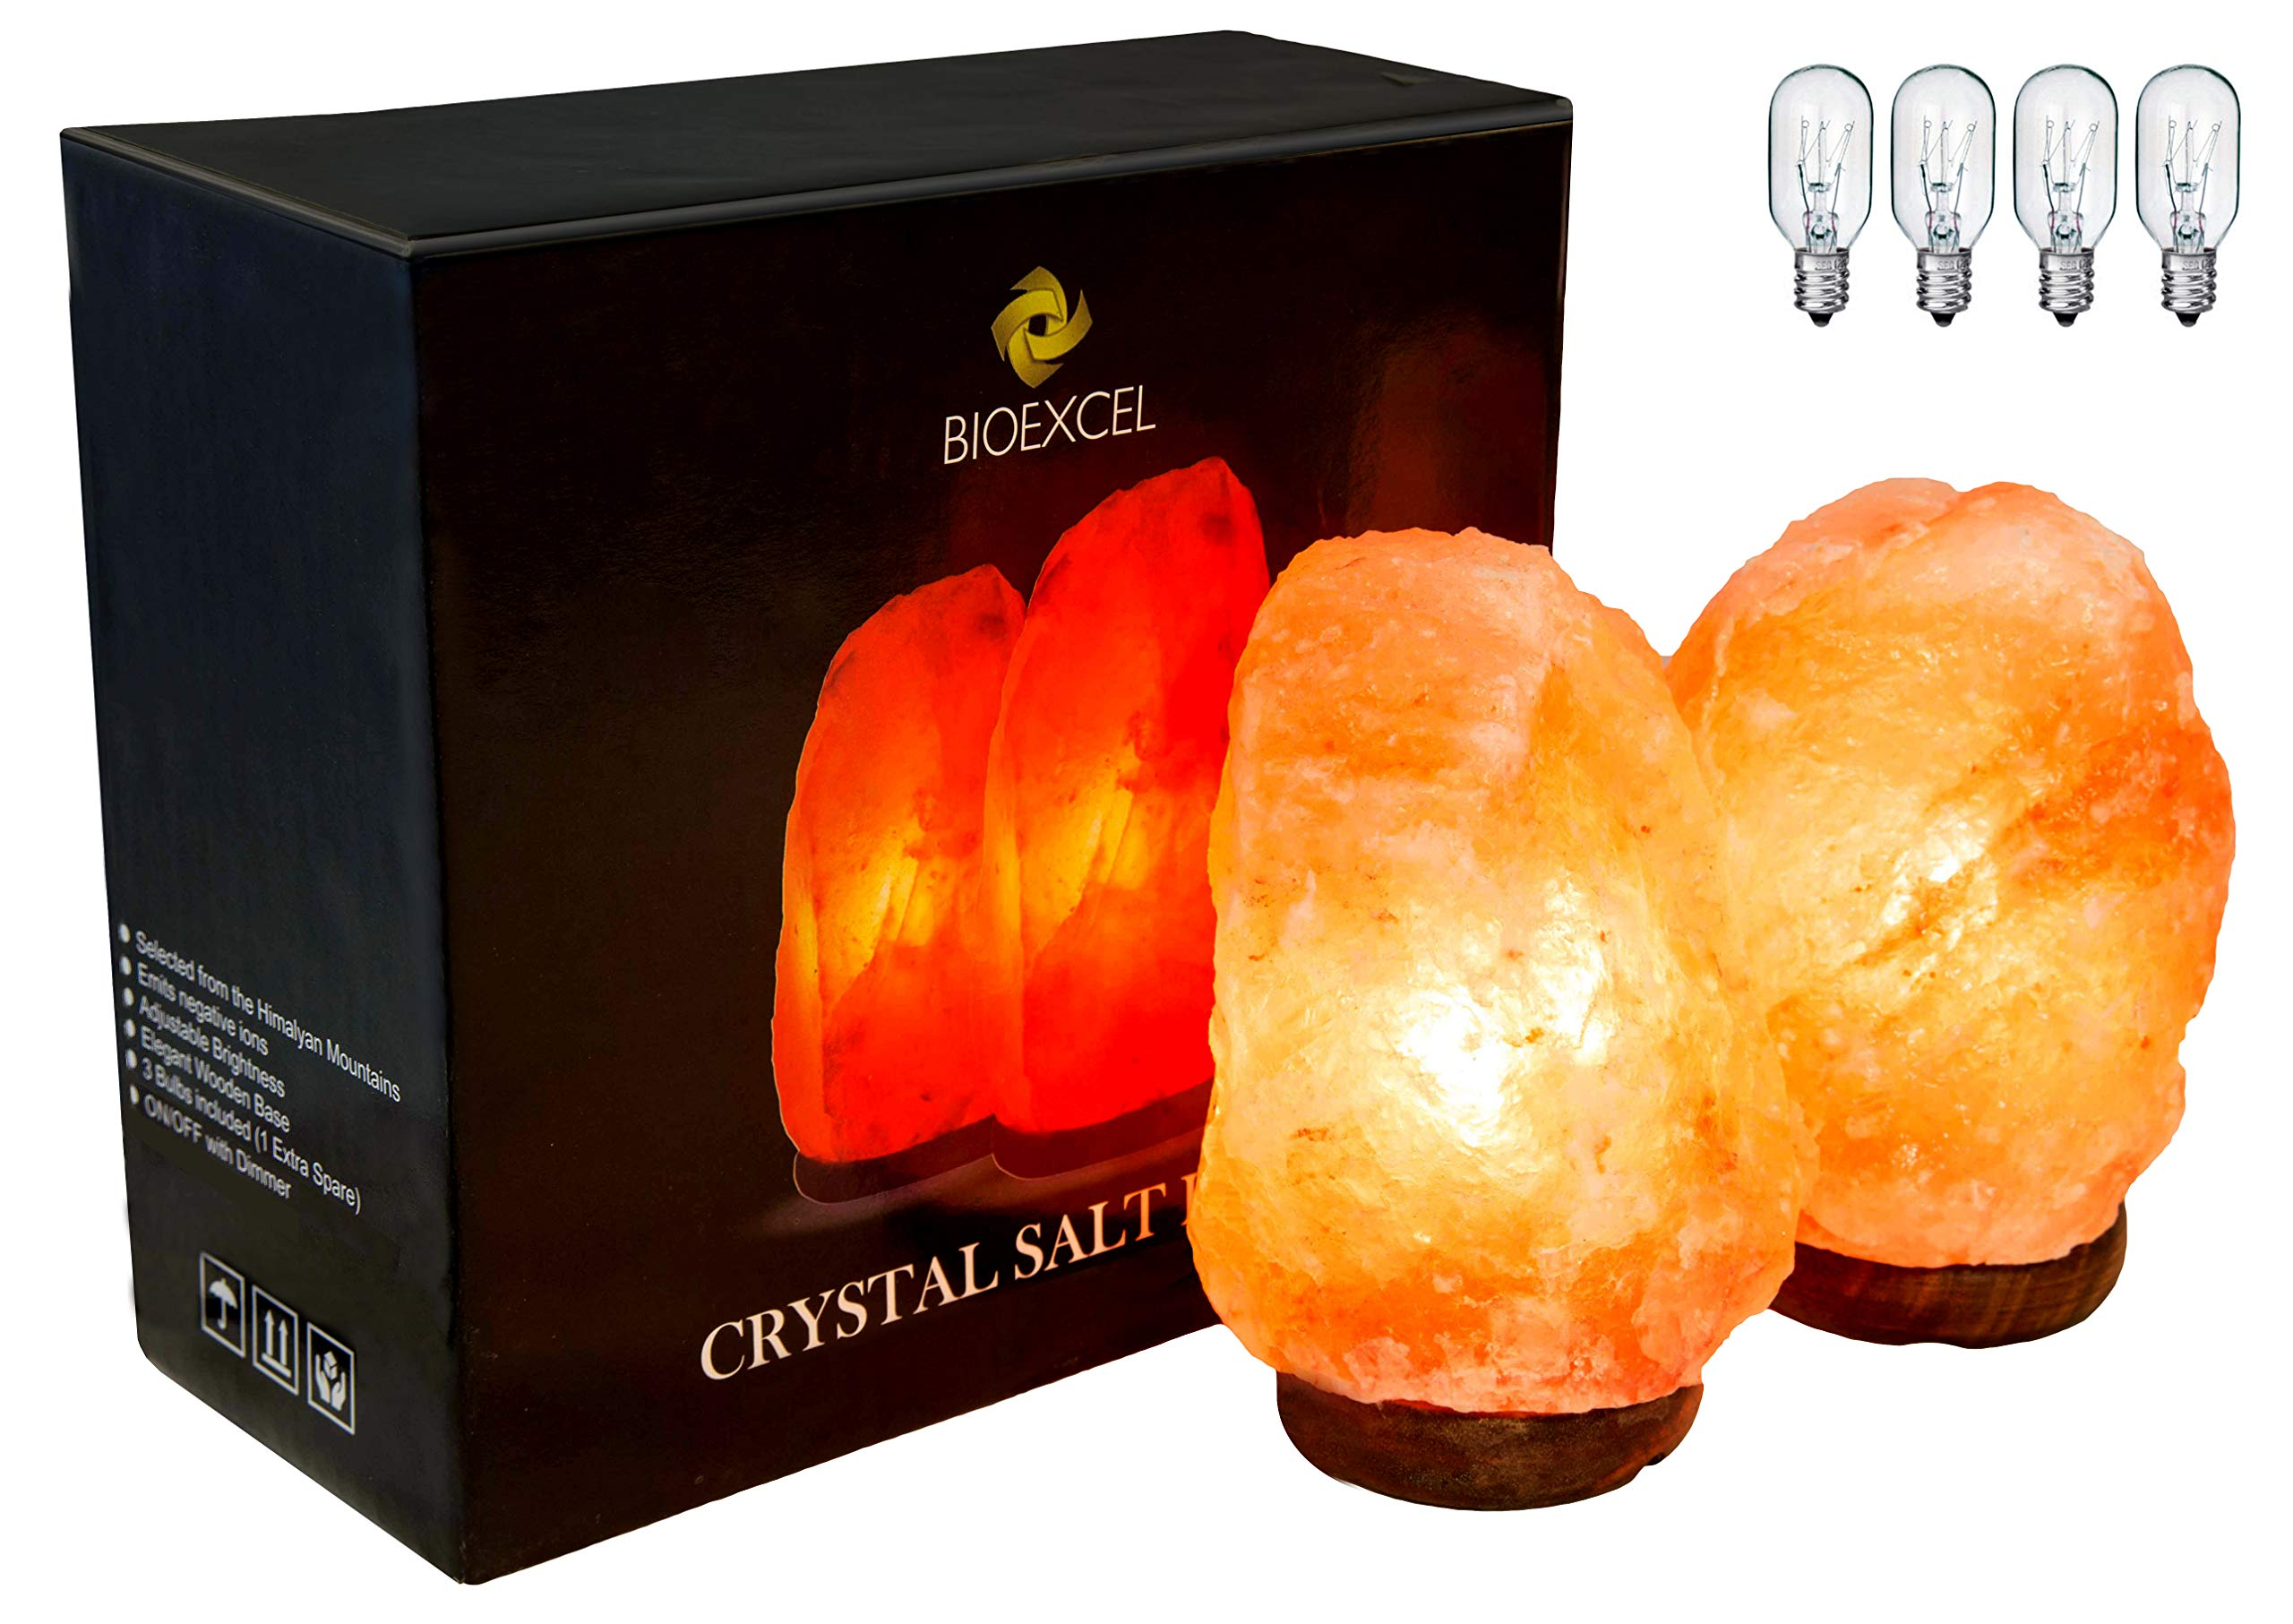 Bioexcel Pack of 2 Natural Himalayan Salt Lamp with Dimmer – Crystal Night Light Pink Salt Lamp Wood Base Hand Carved - Home Décor Table lamps | 4 lbs - 4 Bulbs 15 Watts Included With UL-Listed Cord